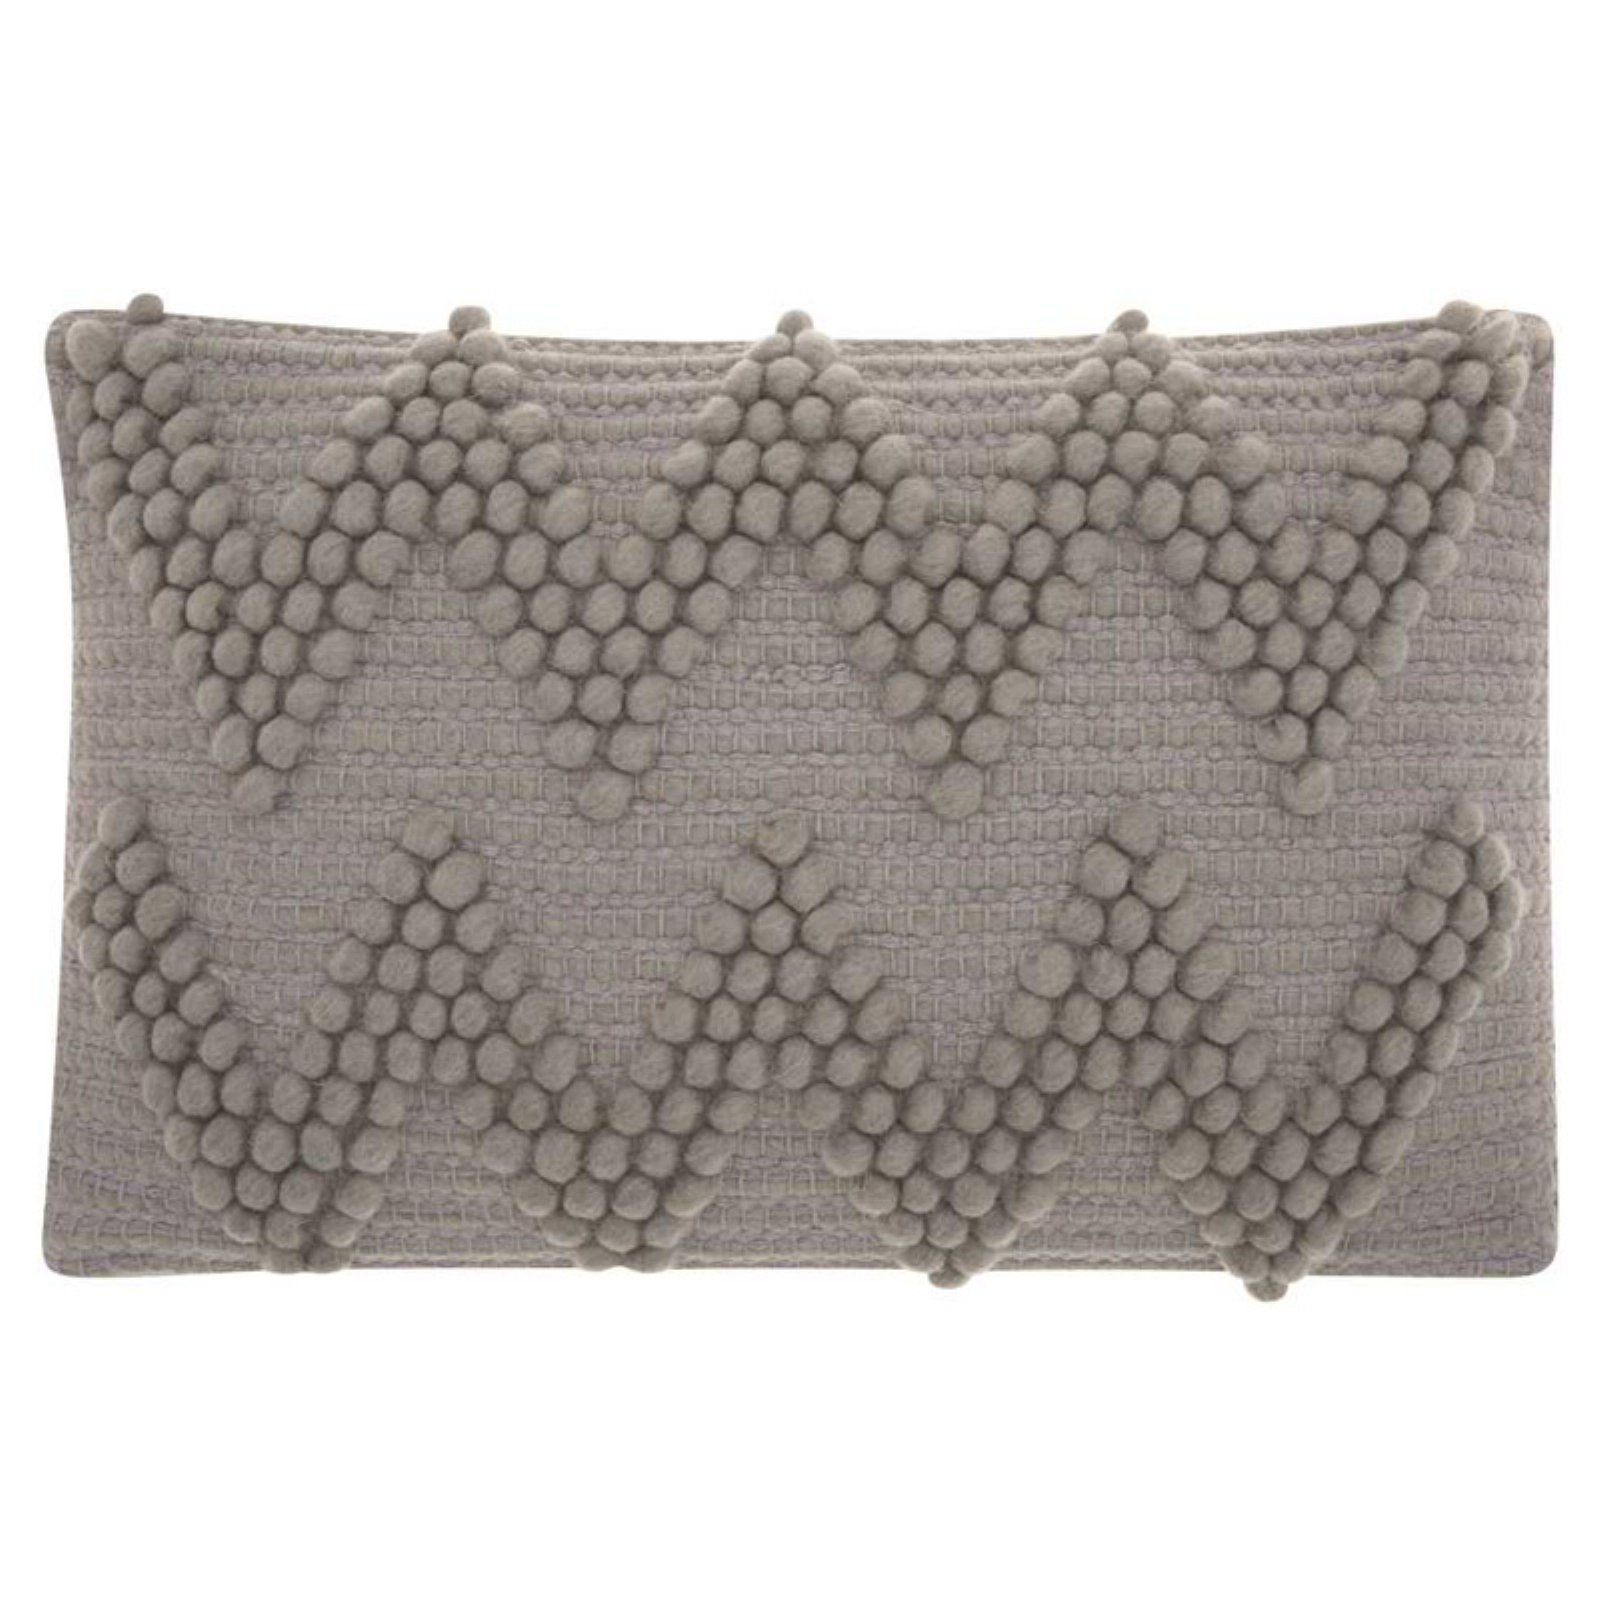 "Nourison Life Styles Large Chevron Decorative Throw Pillow, 12"" x 18"", Light Grey"